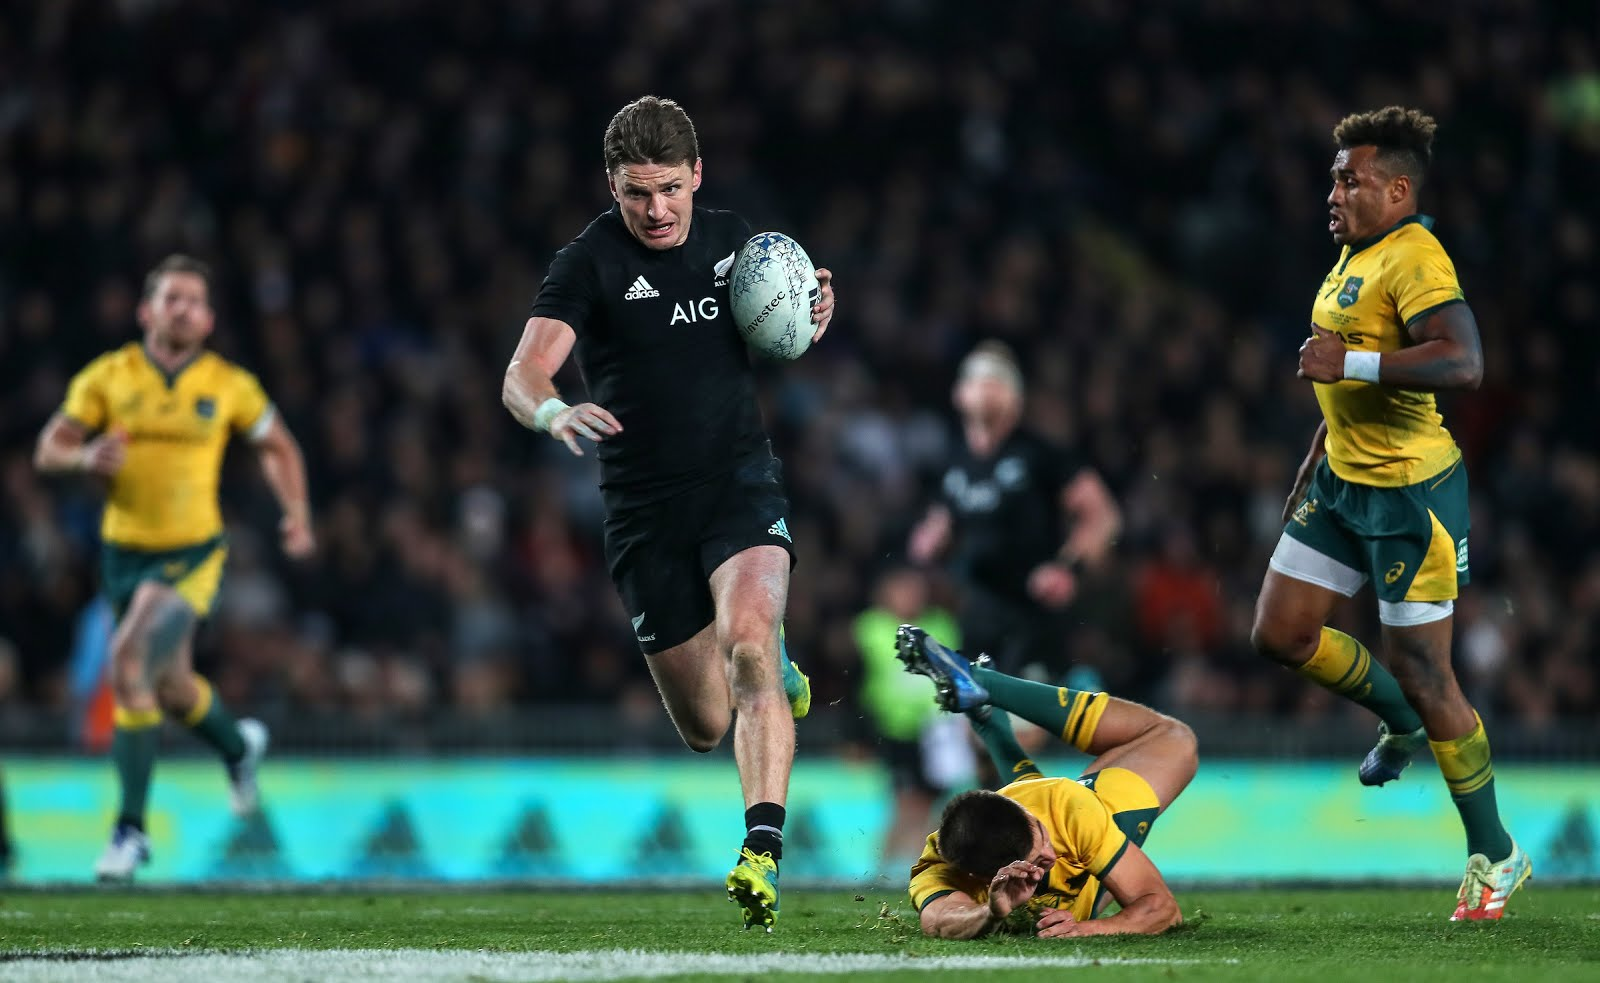 Beauden Barrett in action during the Bledisloe Cup and Rugby Championship rugby match between the New Zealand All Blacks and Australia Wallabies at Eden Park in Auckland, New Zealand on Saturday, 25 August 2018.